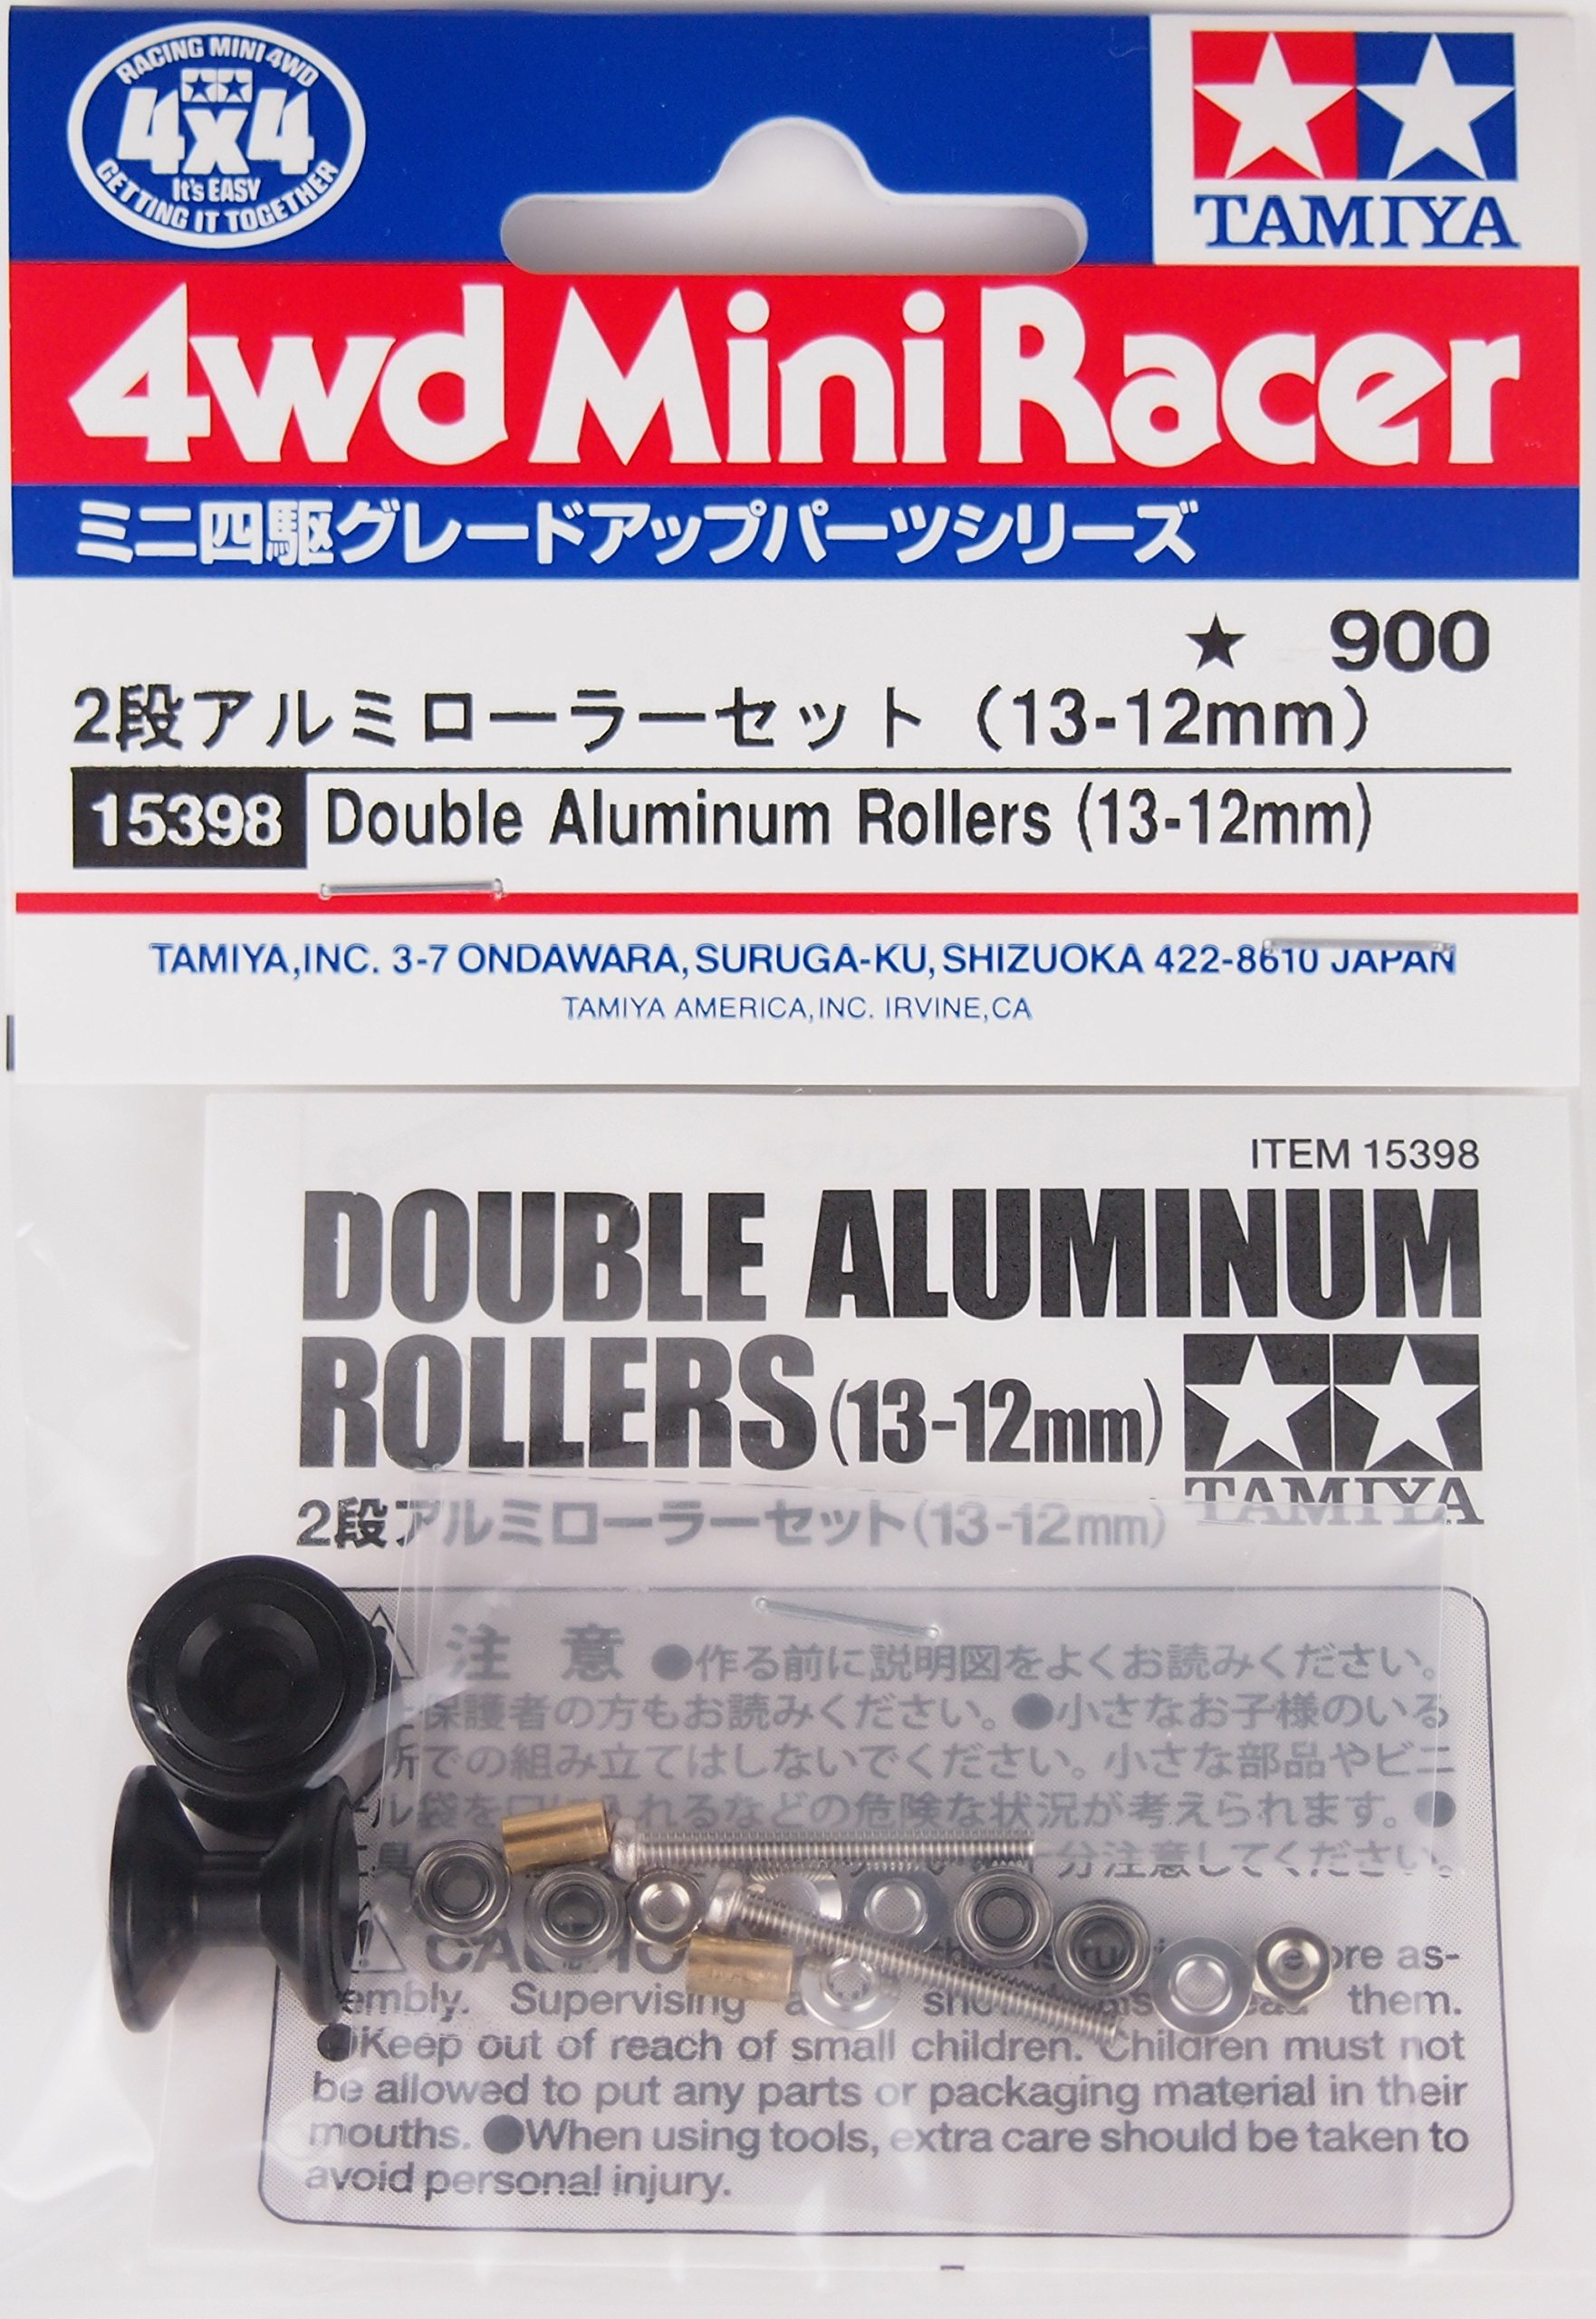 RCECHO® Tamiya Mini 4WD Model Racing Double Aluminum Rollers (13-12mm) 15398 174; Full Version Apps Edition